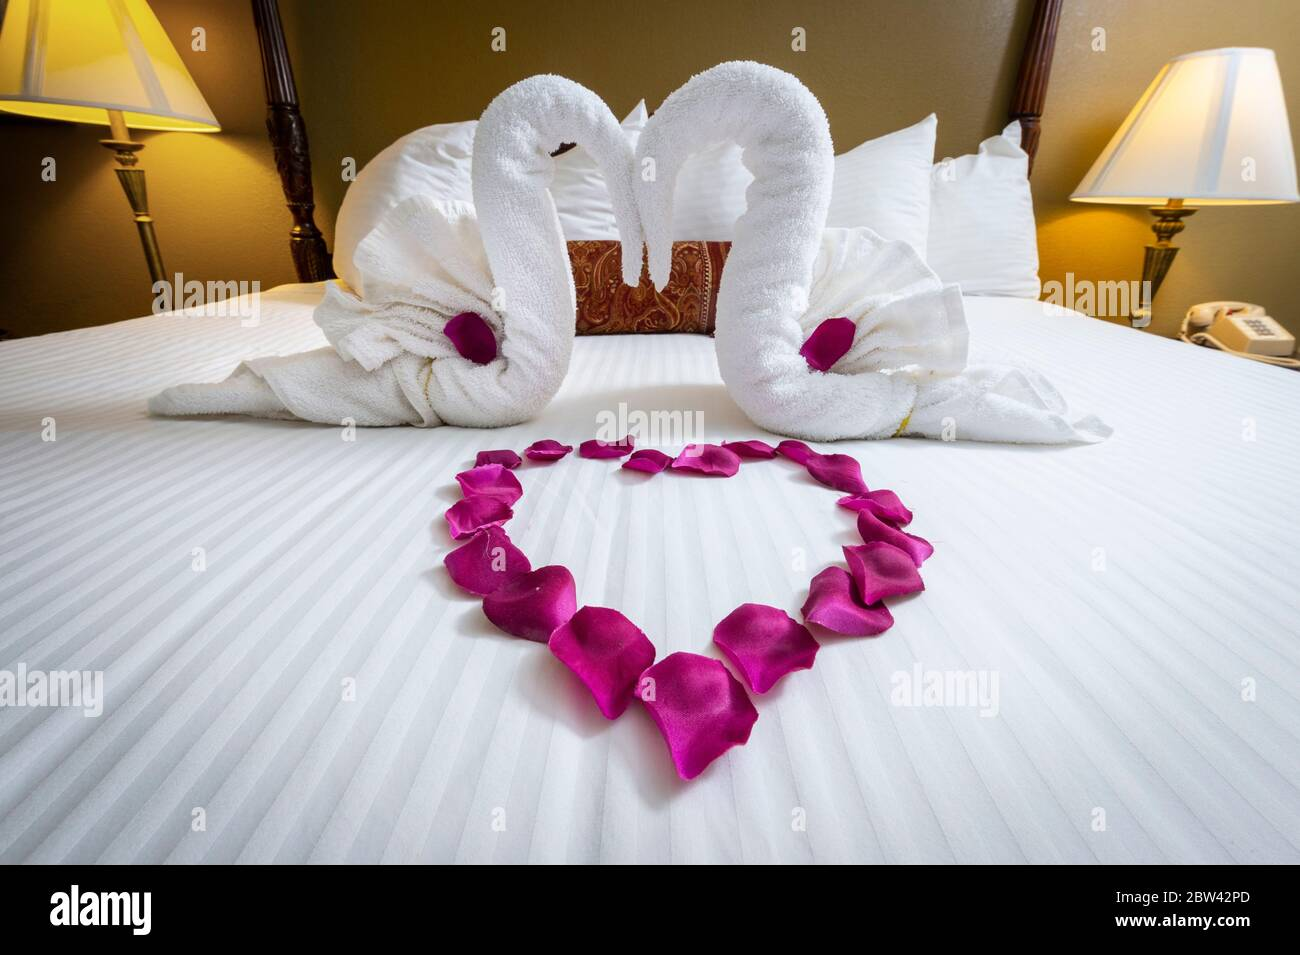 Swan Towel Decorations And Heart Shaped Rose Petals On Bed In Honeymoon Suite Hotel Room Bed Stock Photo Alamy